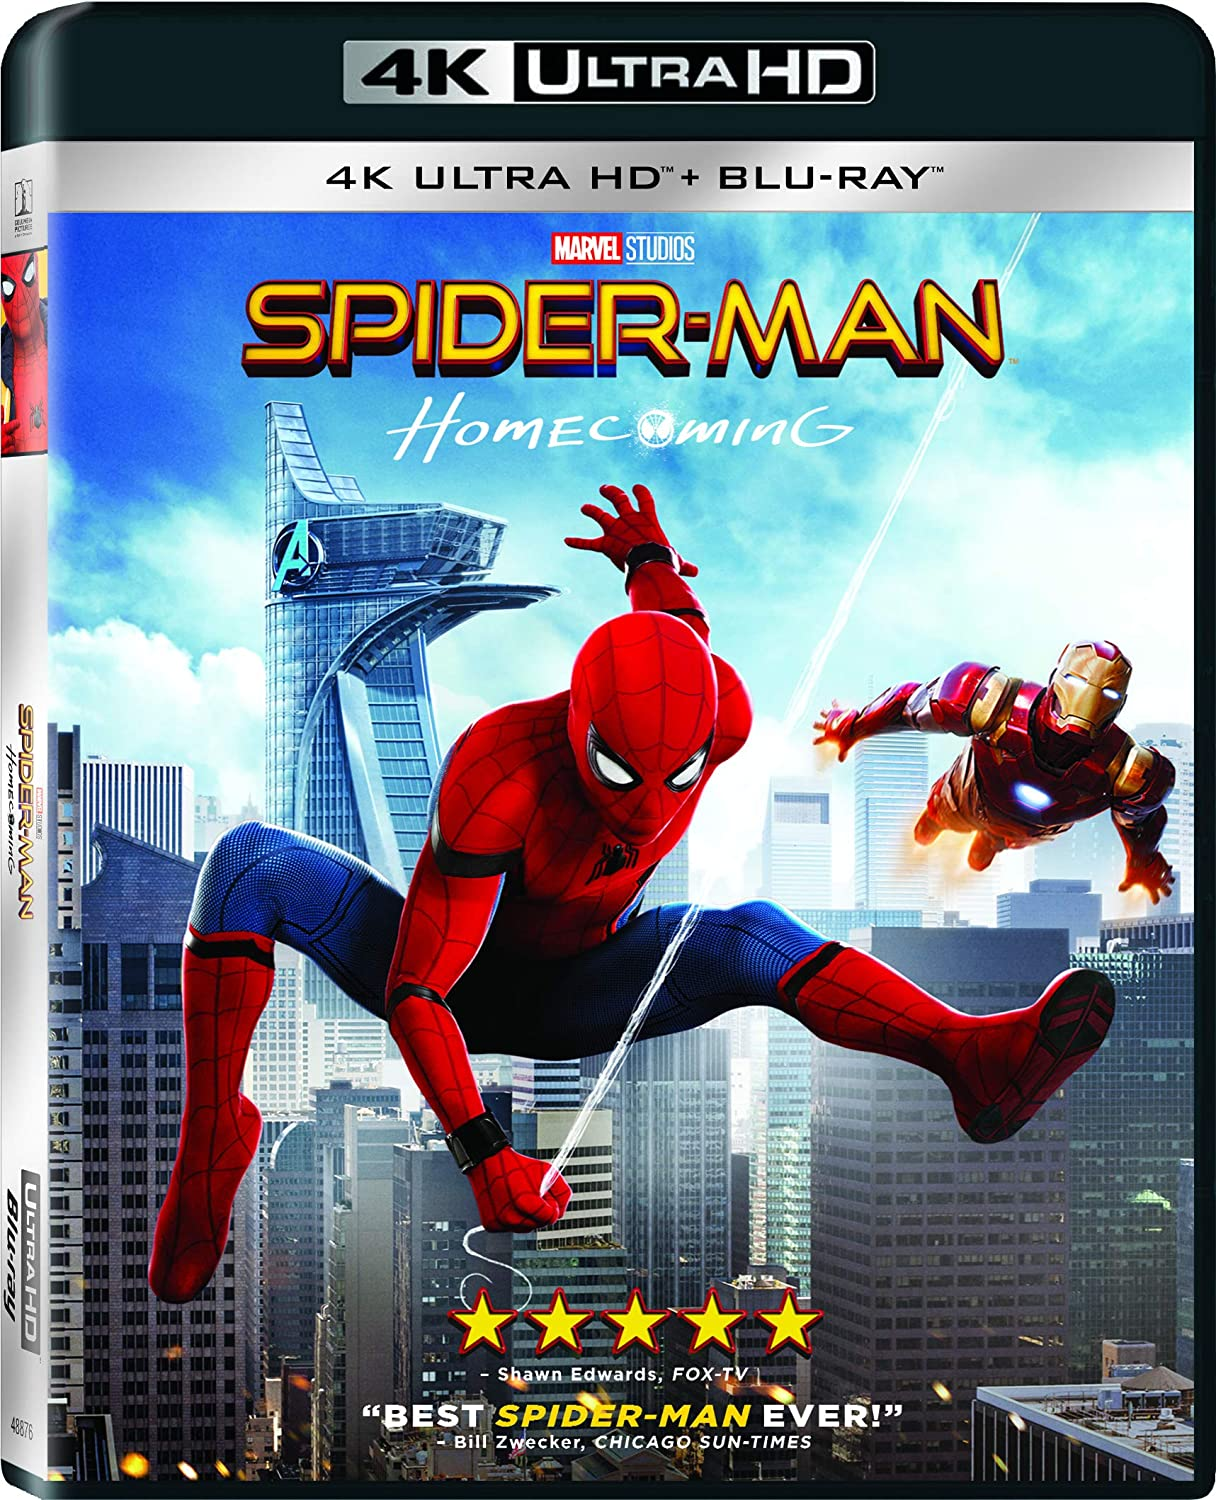 Spider-Man Homecoming 4K Front.Jpg